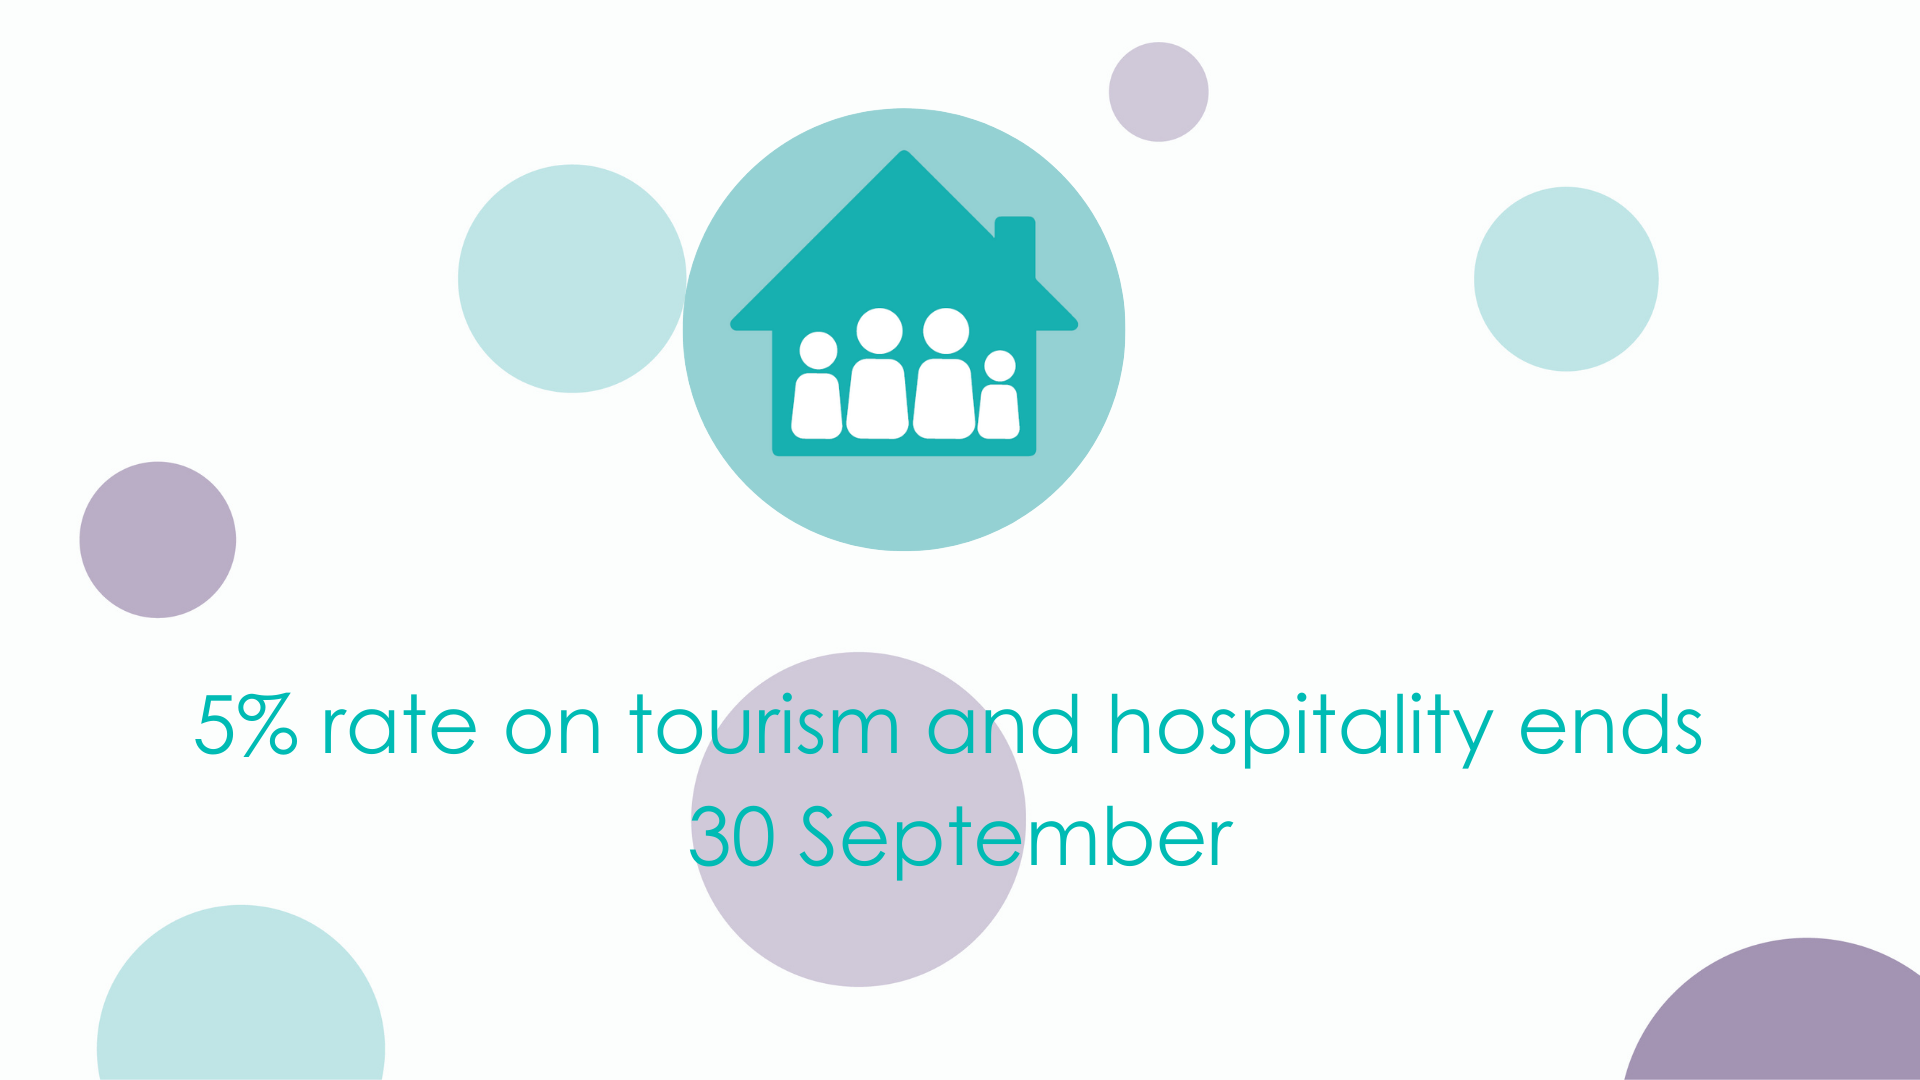 5% rate on tourism and hospitality ends 30 September